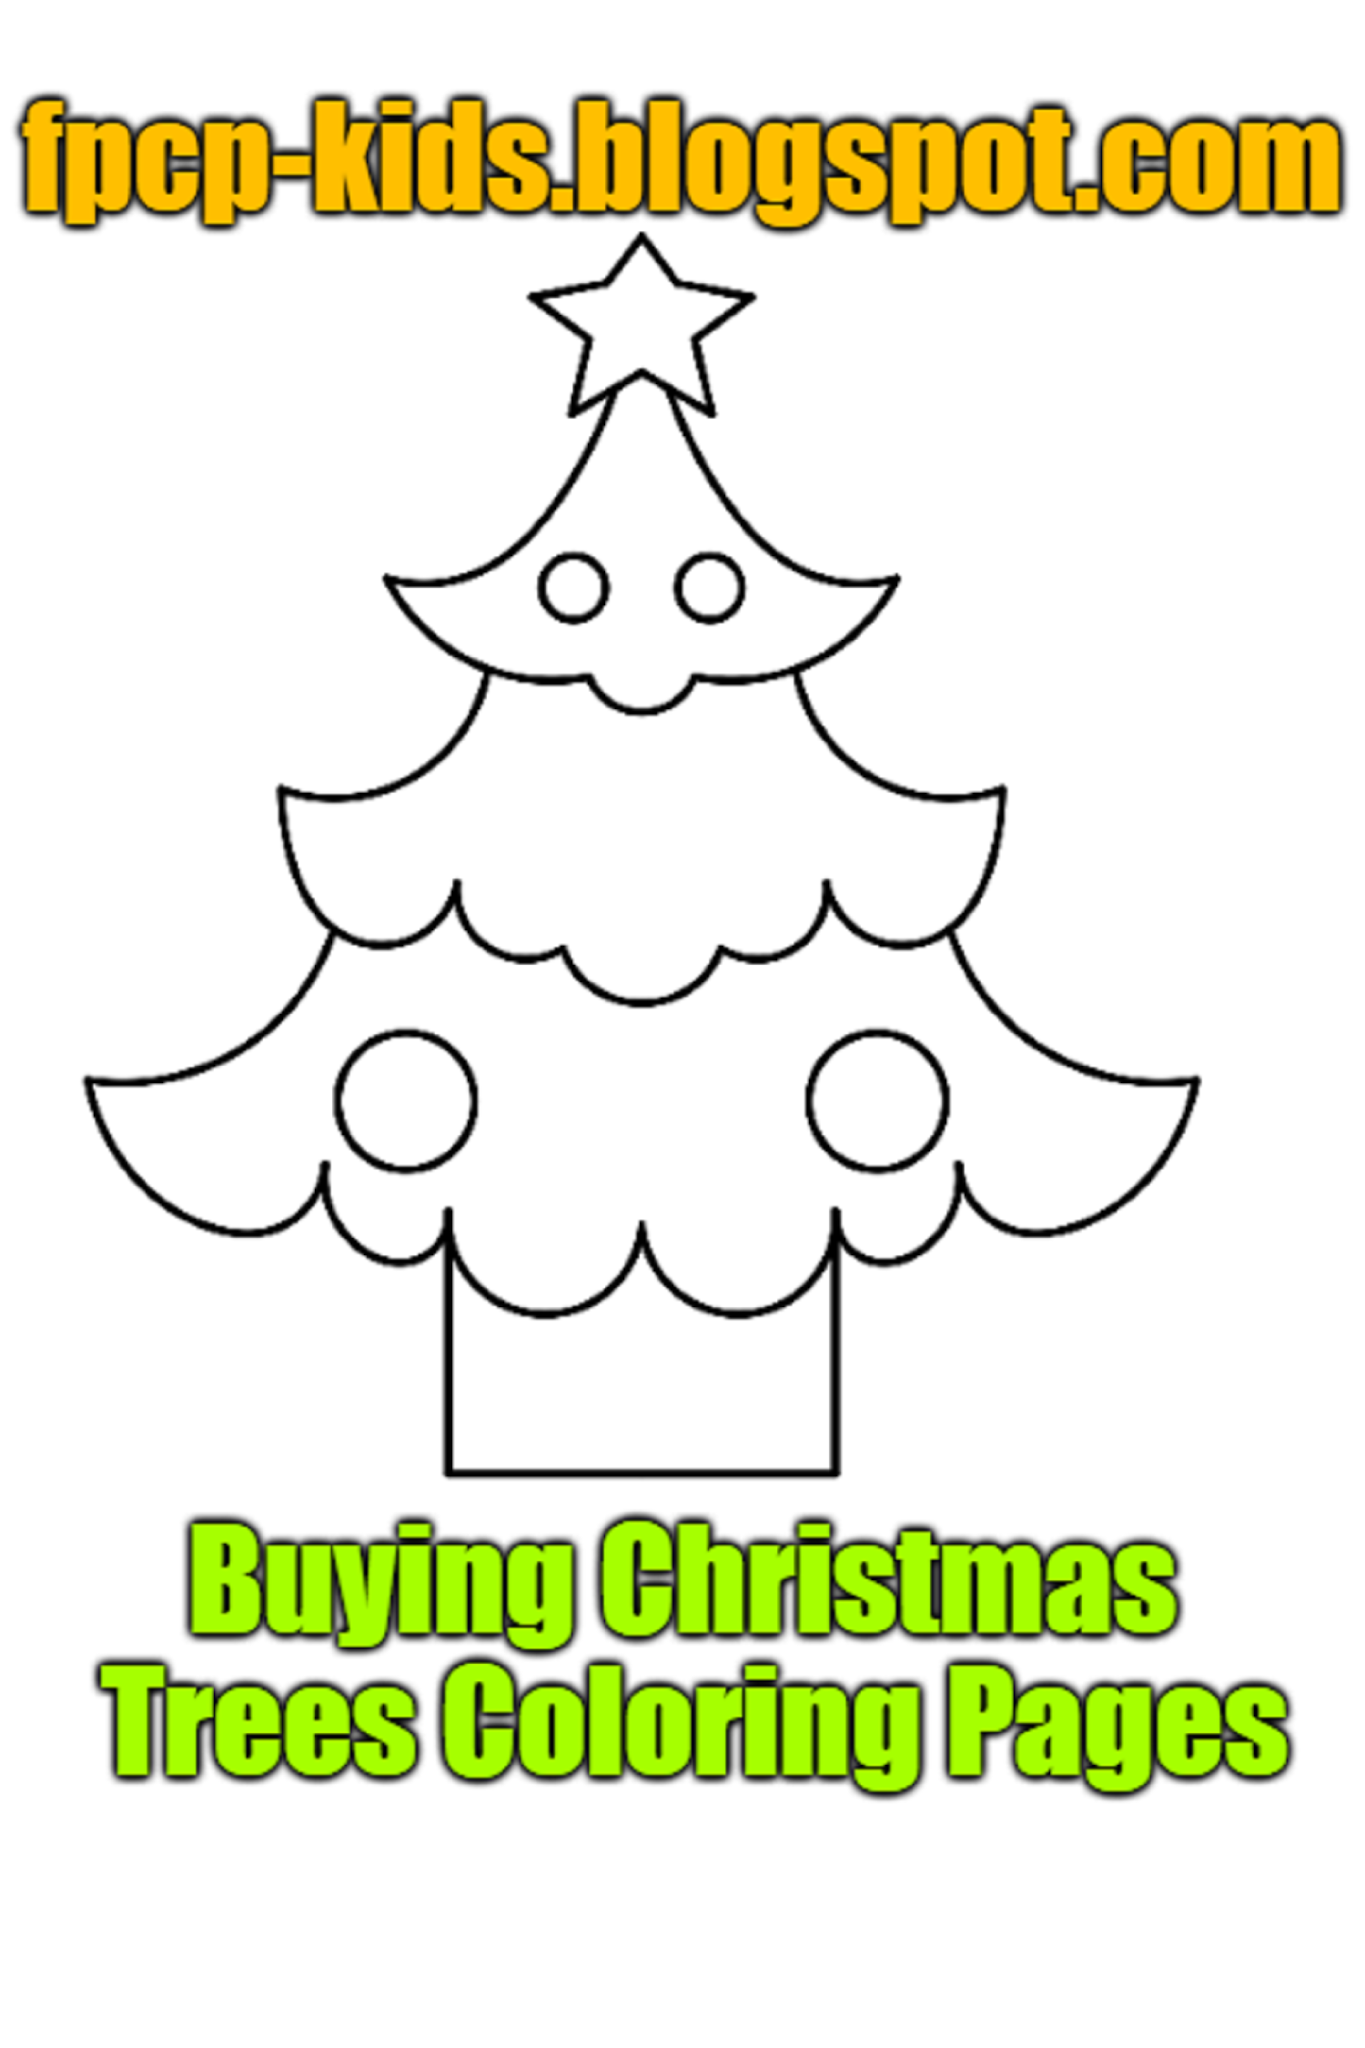 Buying Christmas Trees Coloring Pages Christmas Trees Free